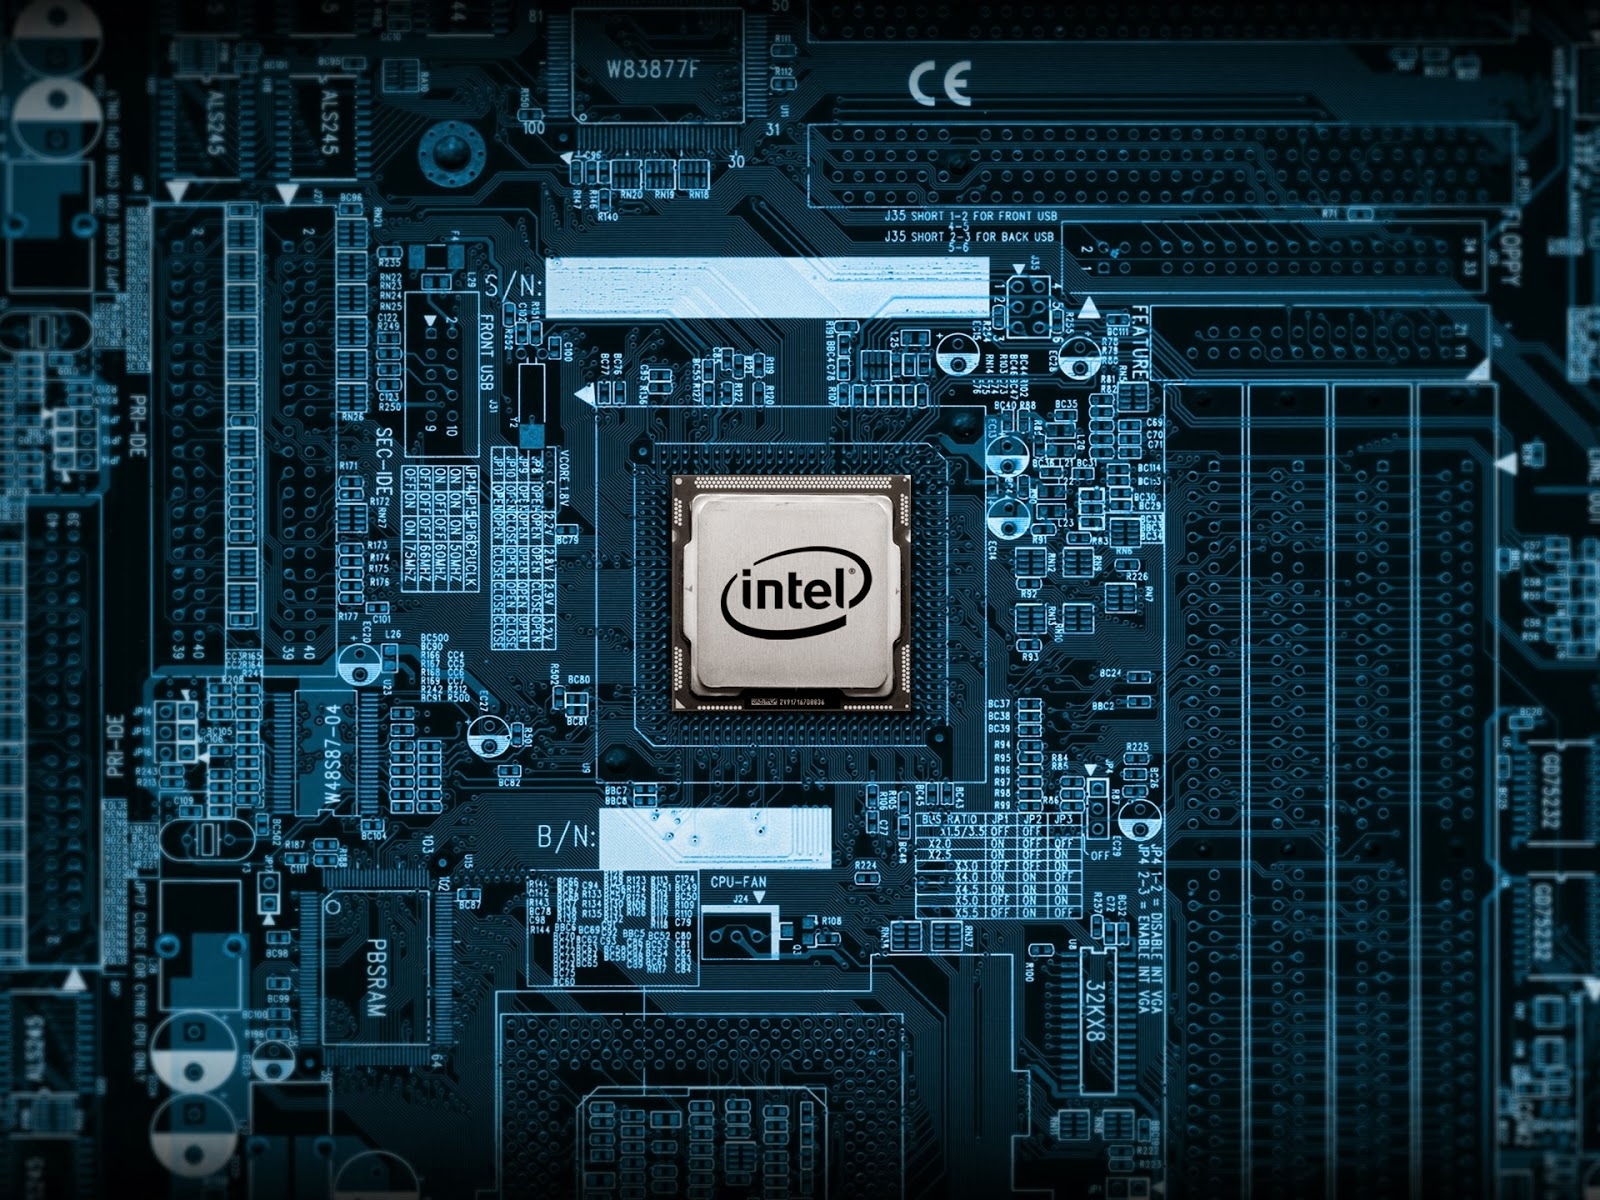 A chip manufactured by Intel